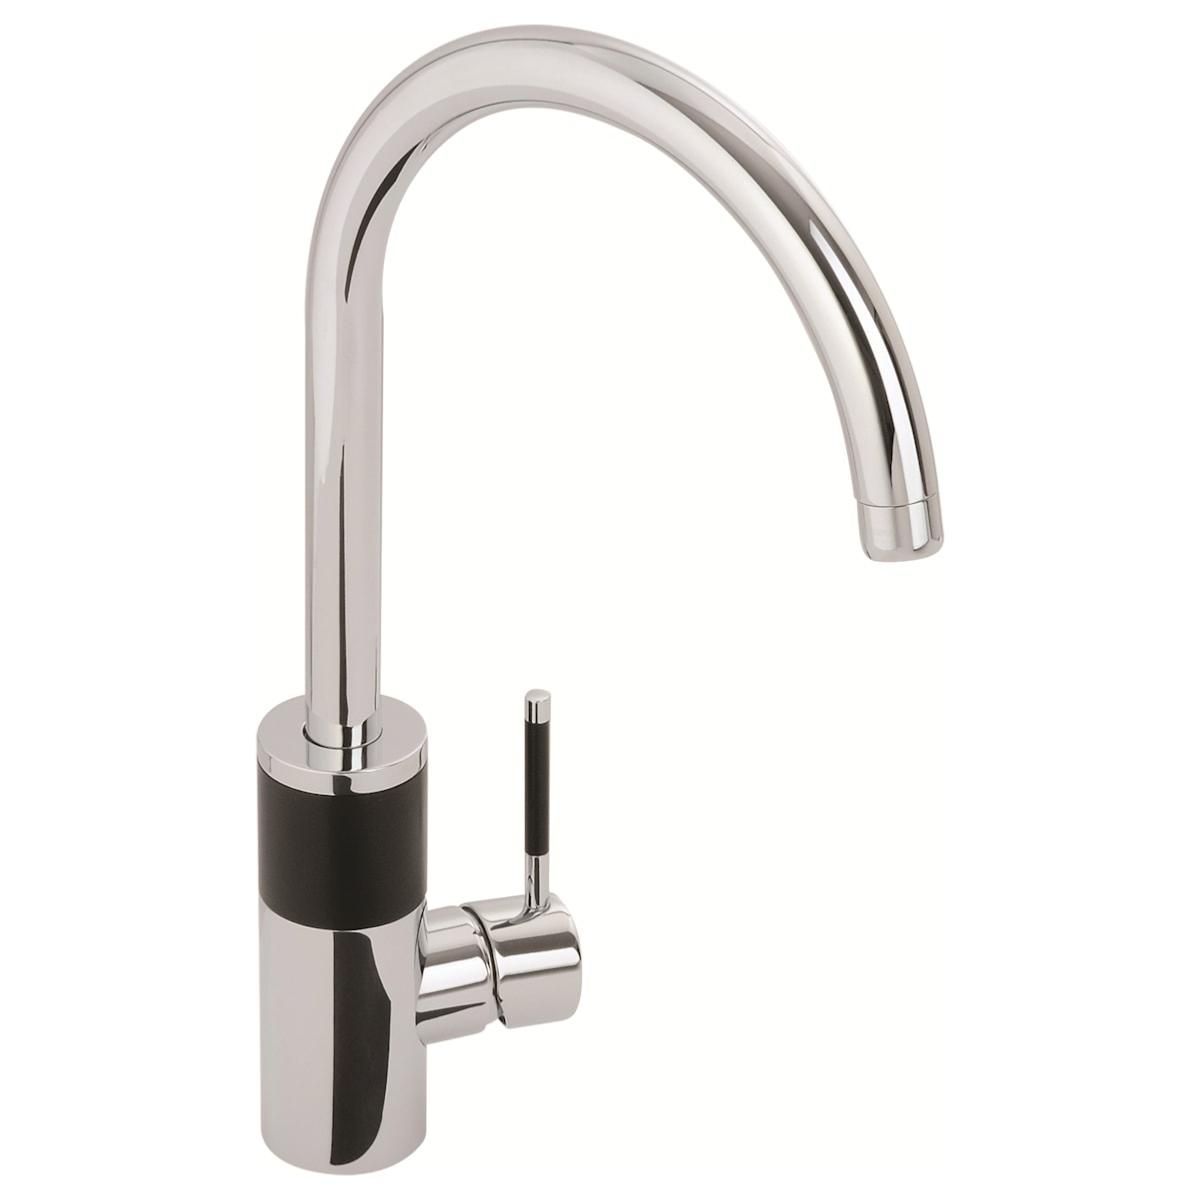 Abode Triana Aquifier 3-Way Kitchen Filter Tap Chrome